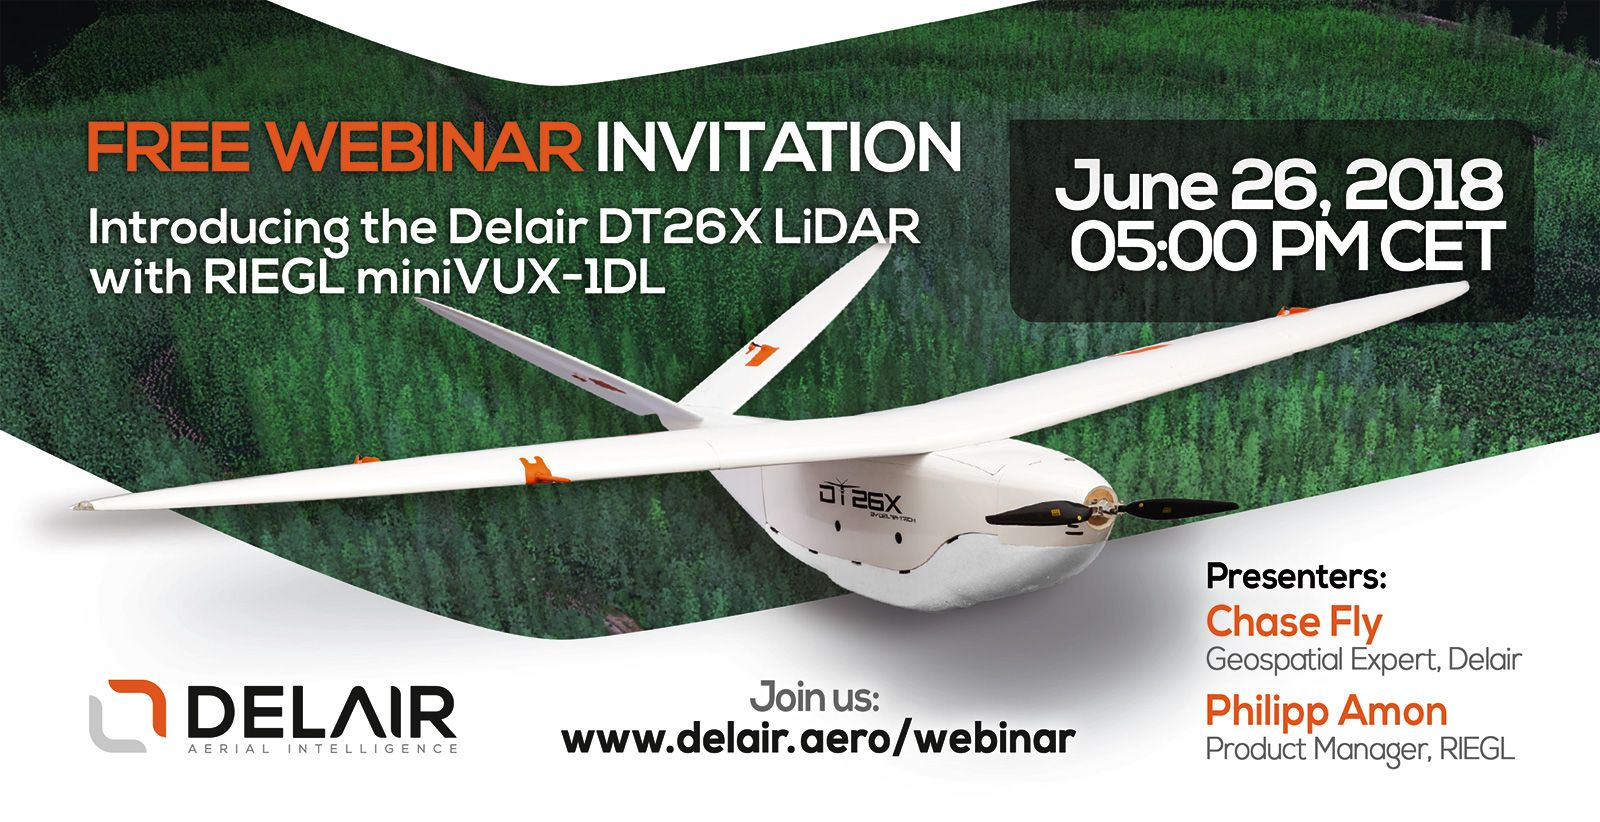 Register to watch the live webinar: Introducing the Delair DT26X LiDAR